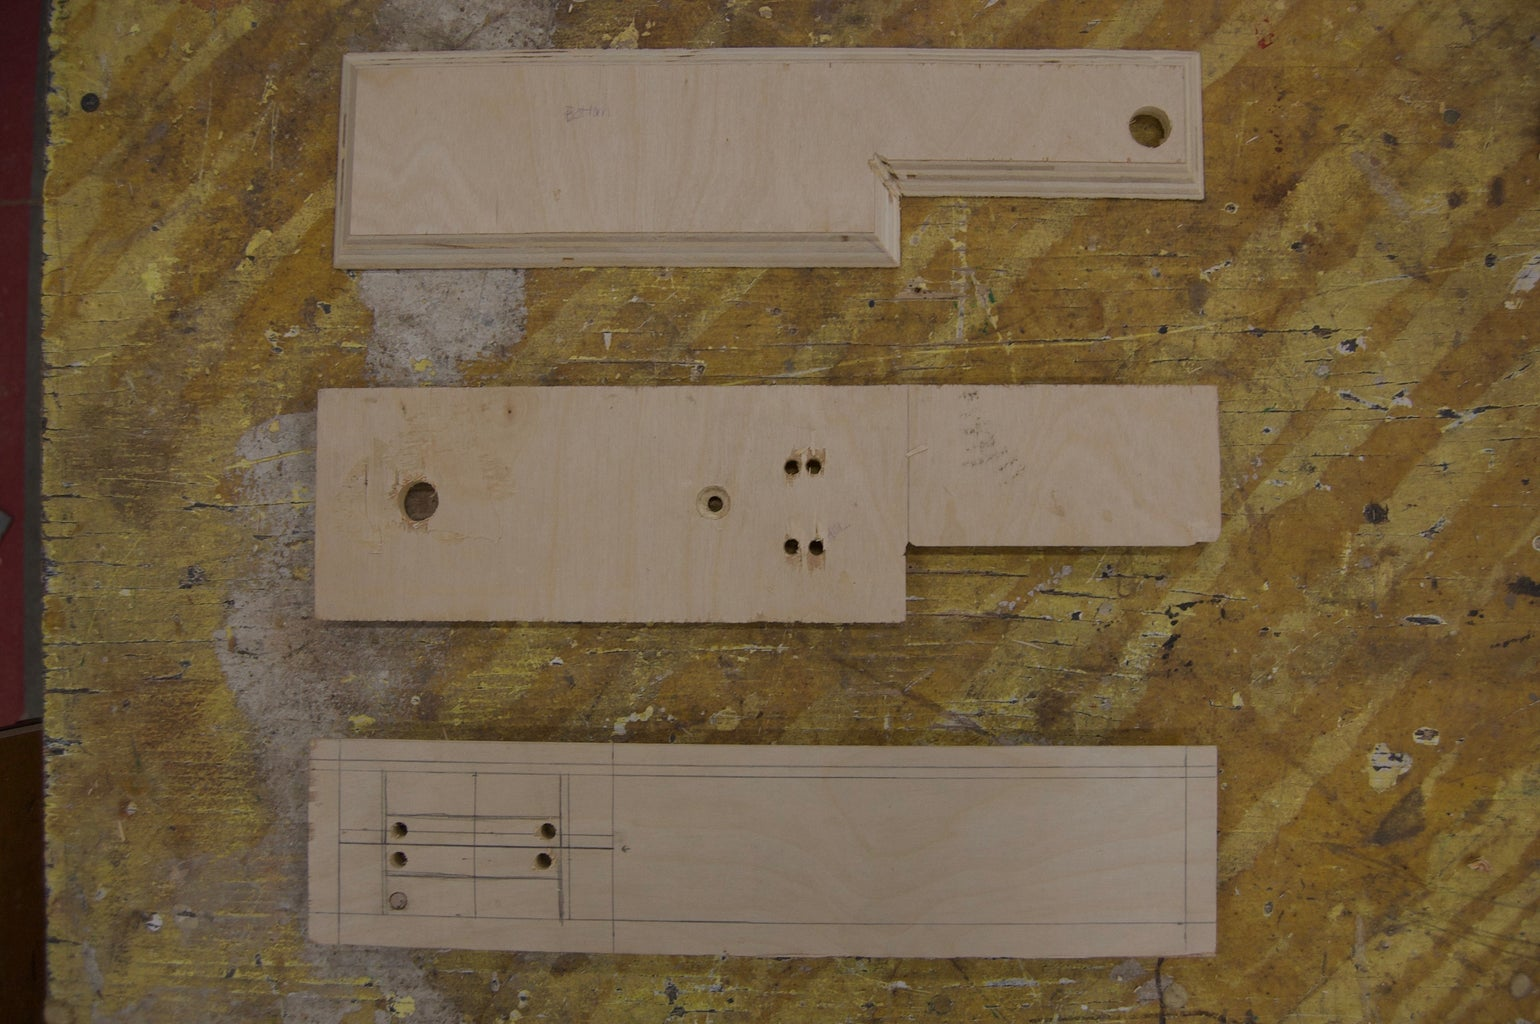 Drill Holes Into Your Wood and Rubber Stopper